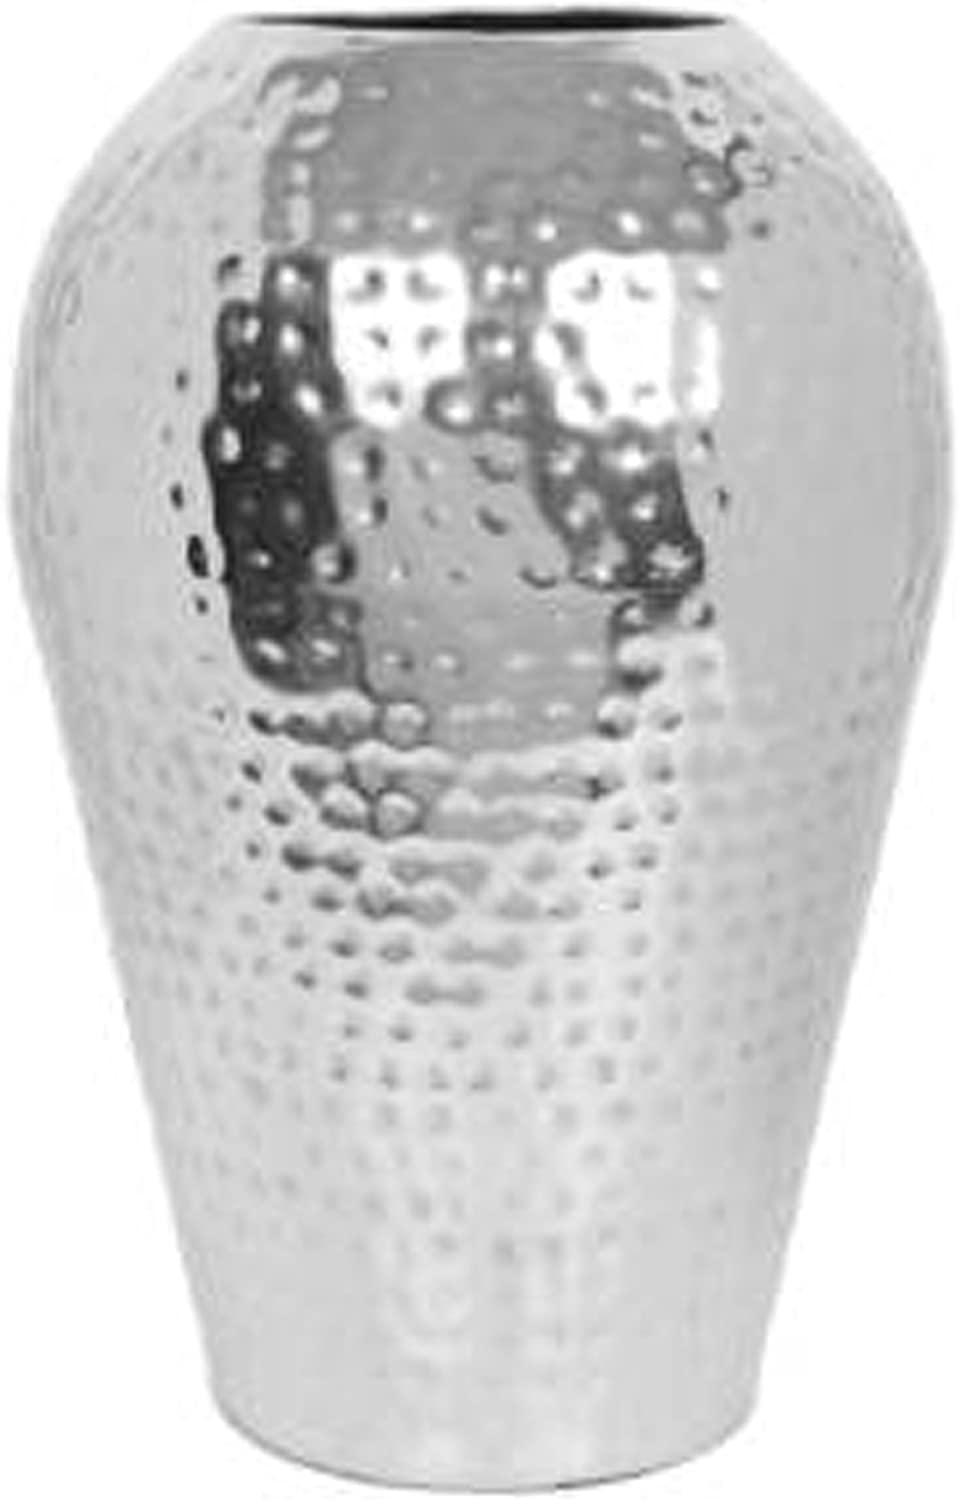 "Hosley's 10"" High Hammered Iron Floor Vase. Handcrafted By Artisans Using Centuries Old Hammer Pattern Techniques. Ideal Wedding Gift, Decor, Aromatherapy or Spa Settings O3"